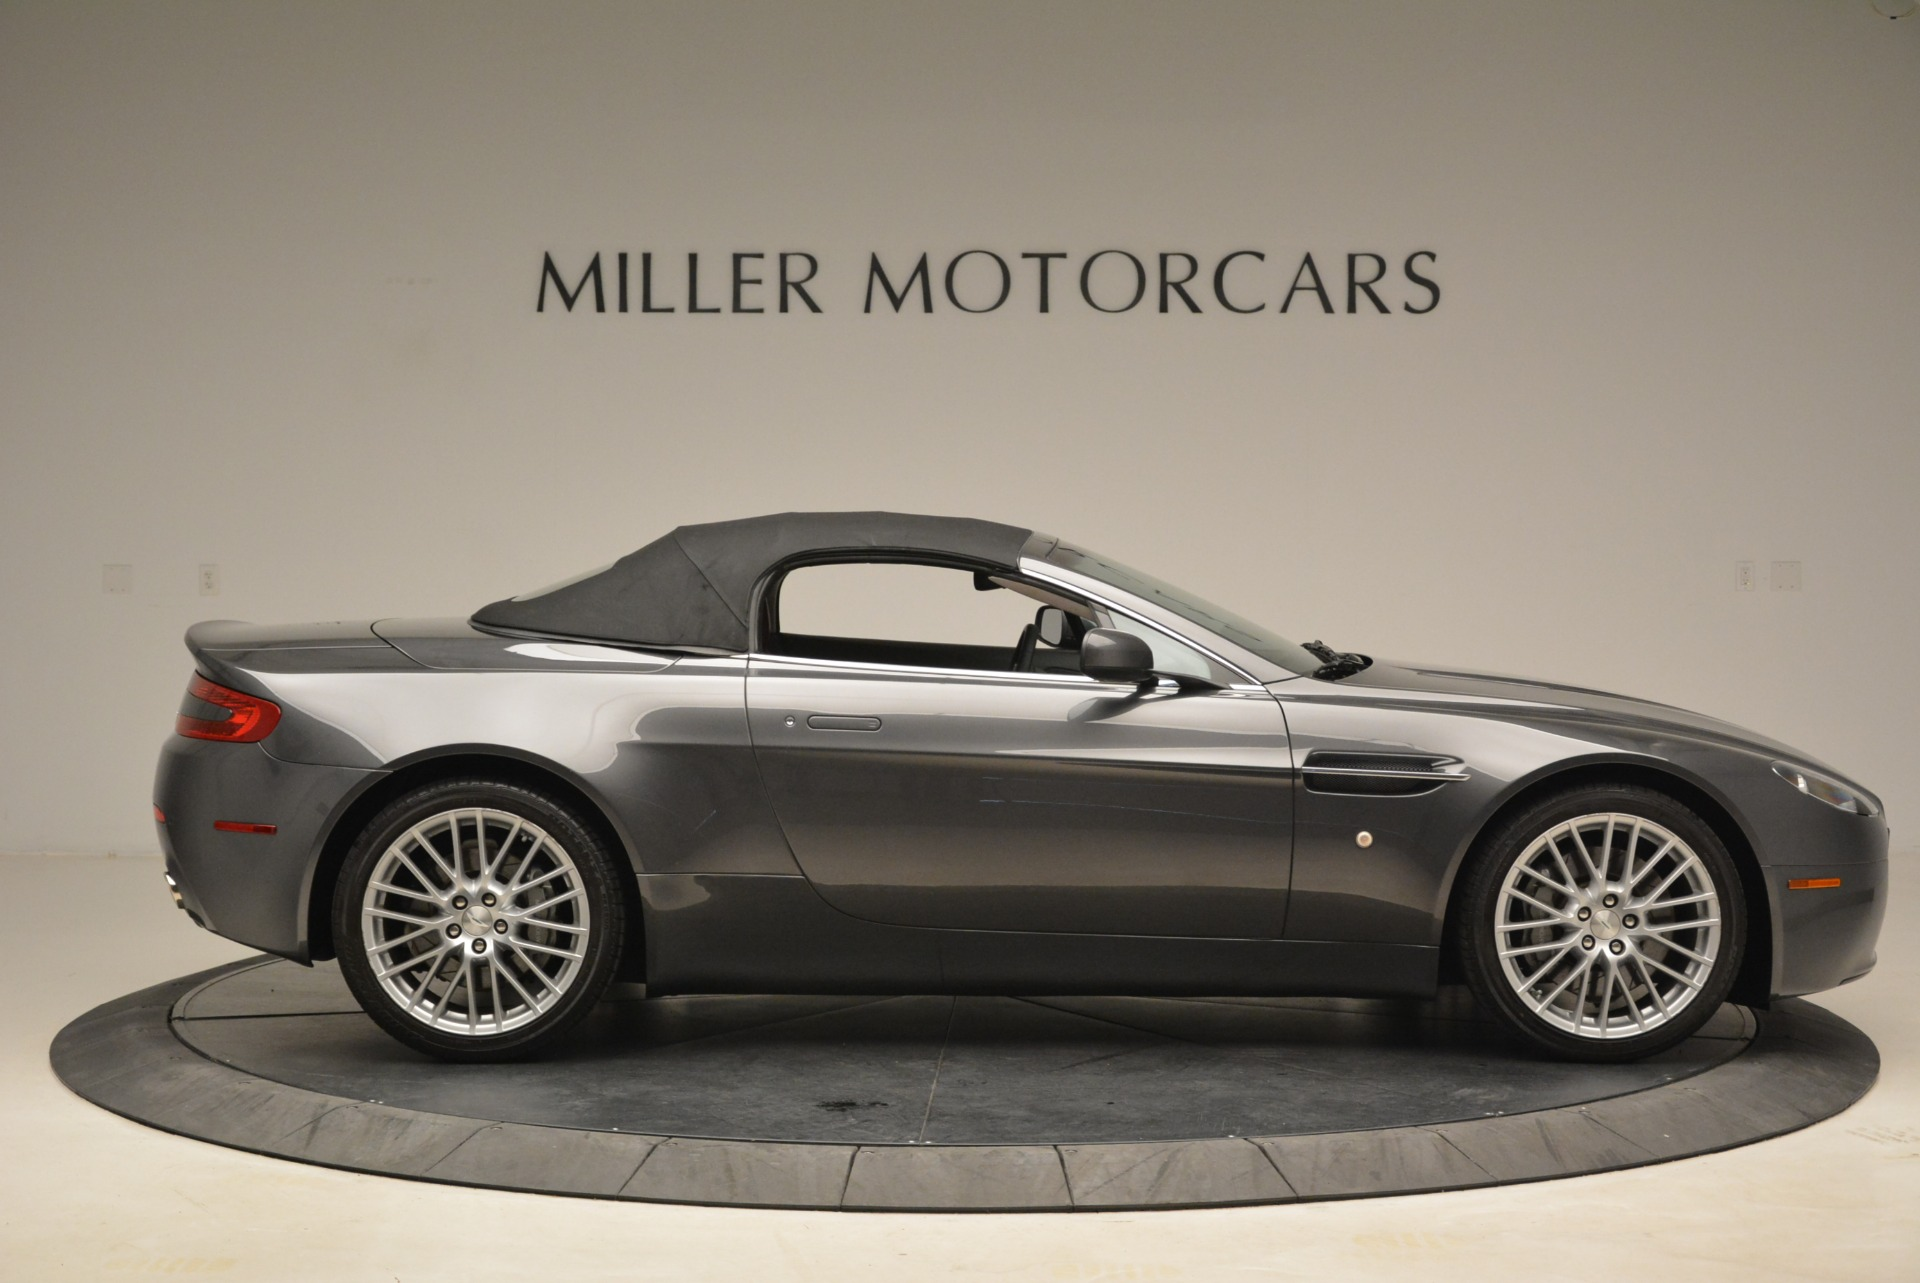 Used 2009 Aston Martin V8 Vantage Roadster For Sale In Greenwich, CT 2123_p21